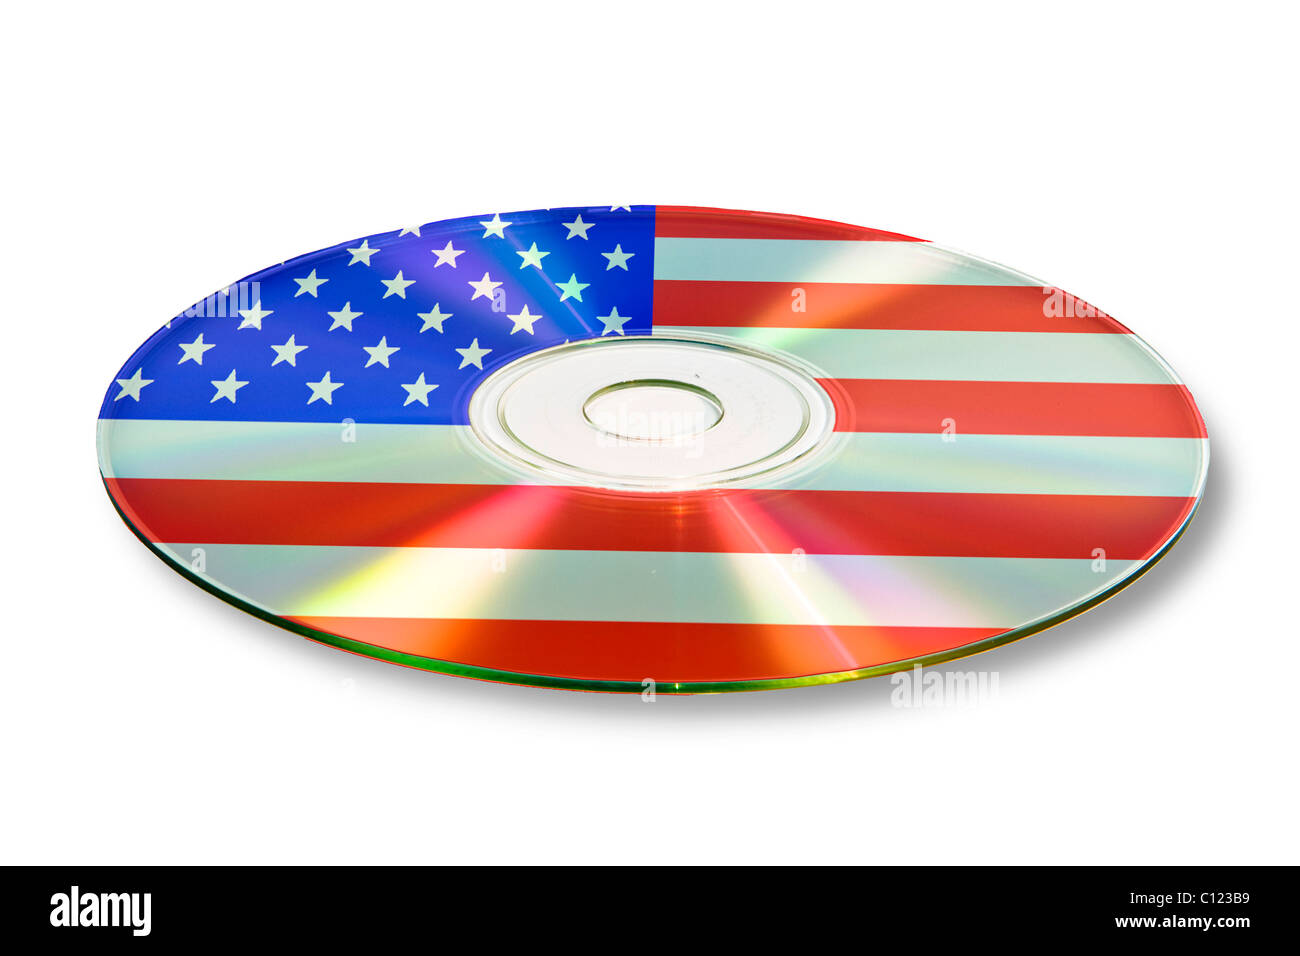 Data, account information, on CD, DVD, USA, United States of America - Stock Image